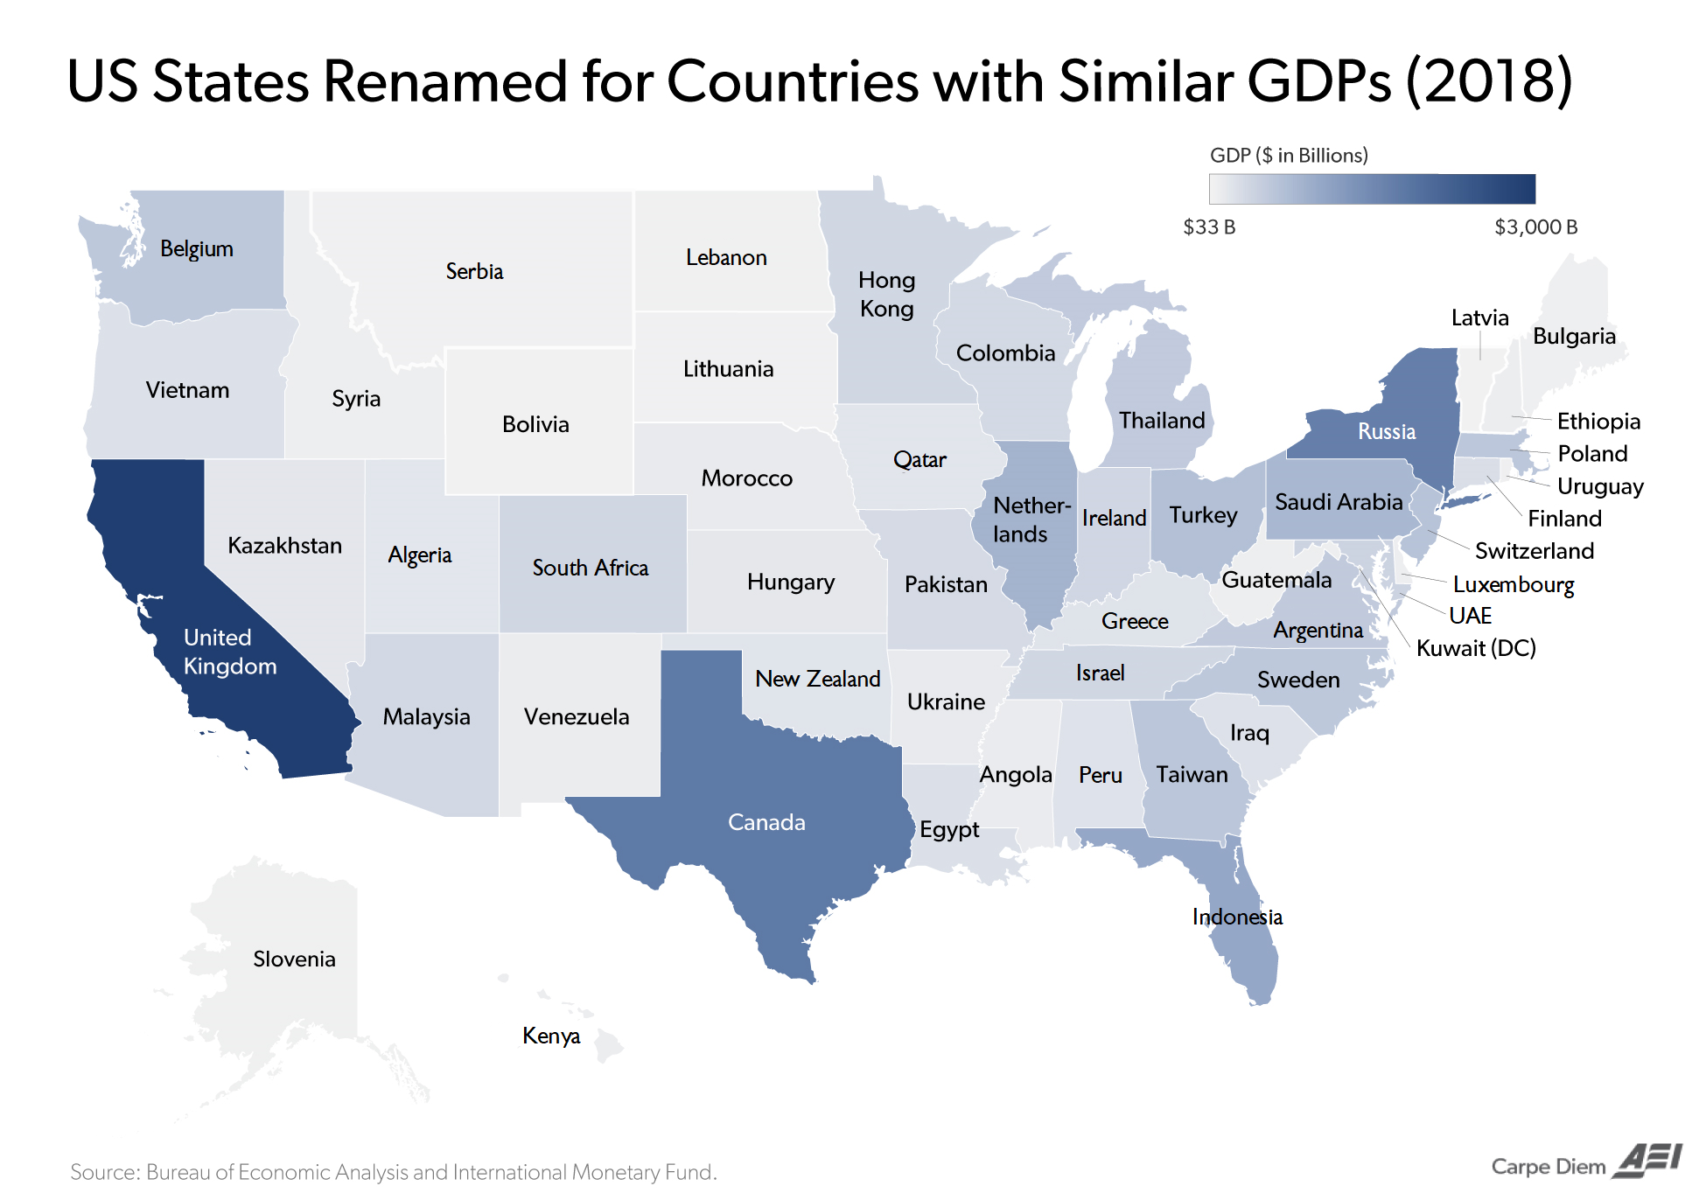 Comparing US States' GDP to Countries 2